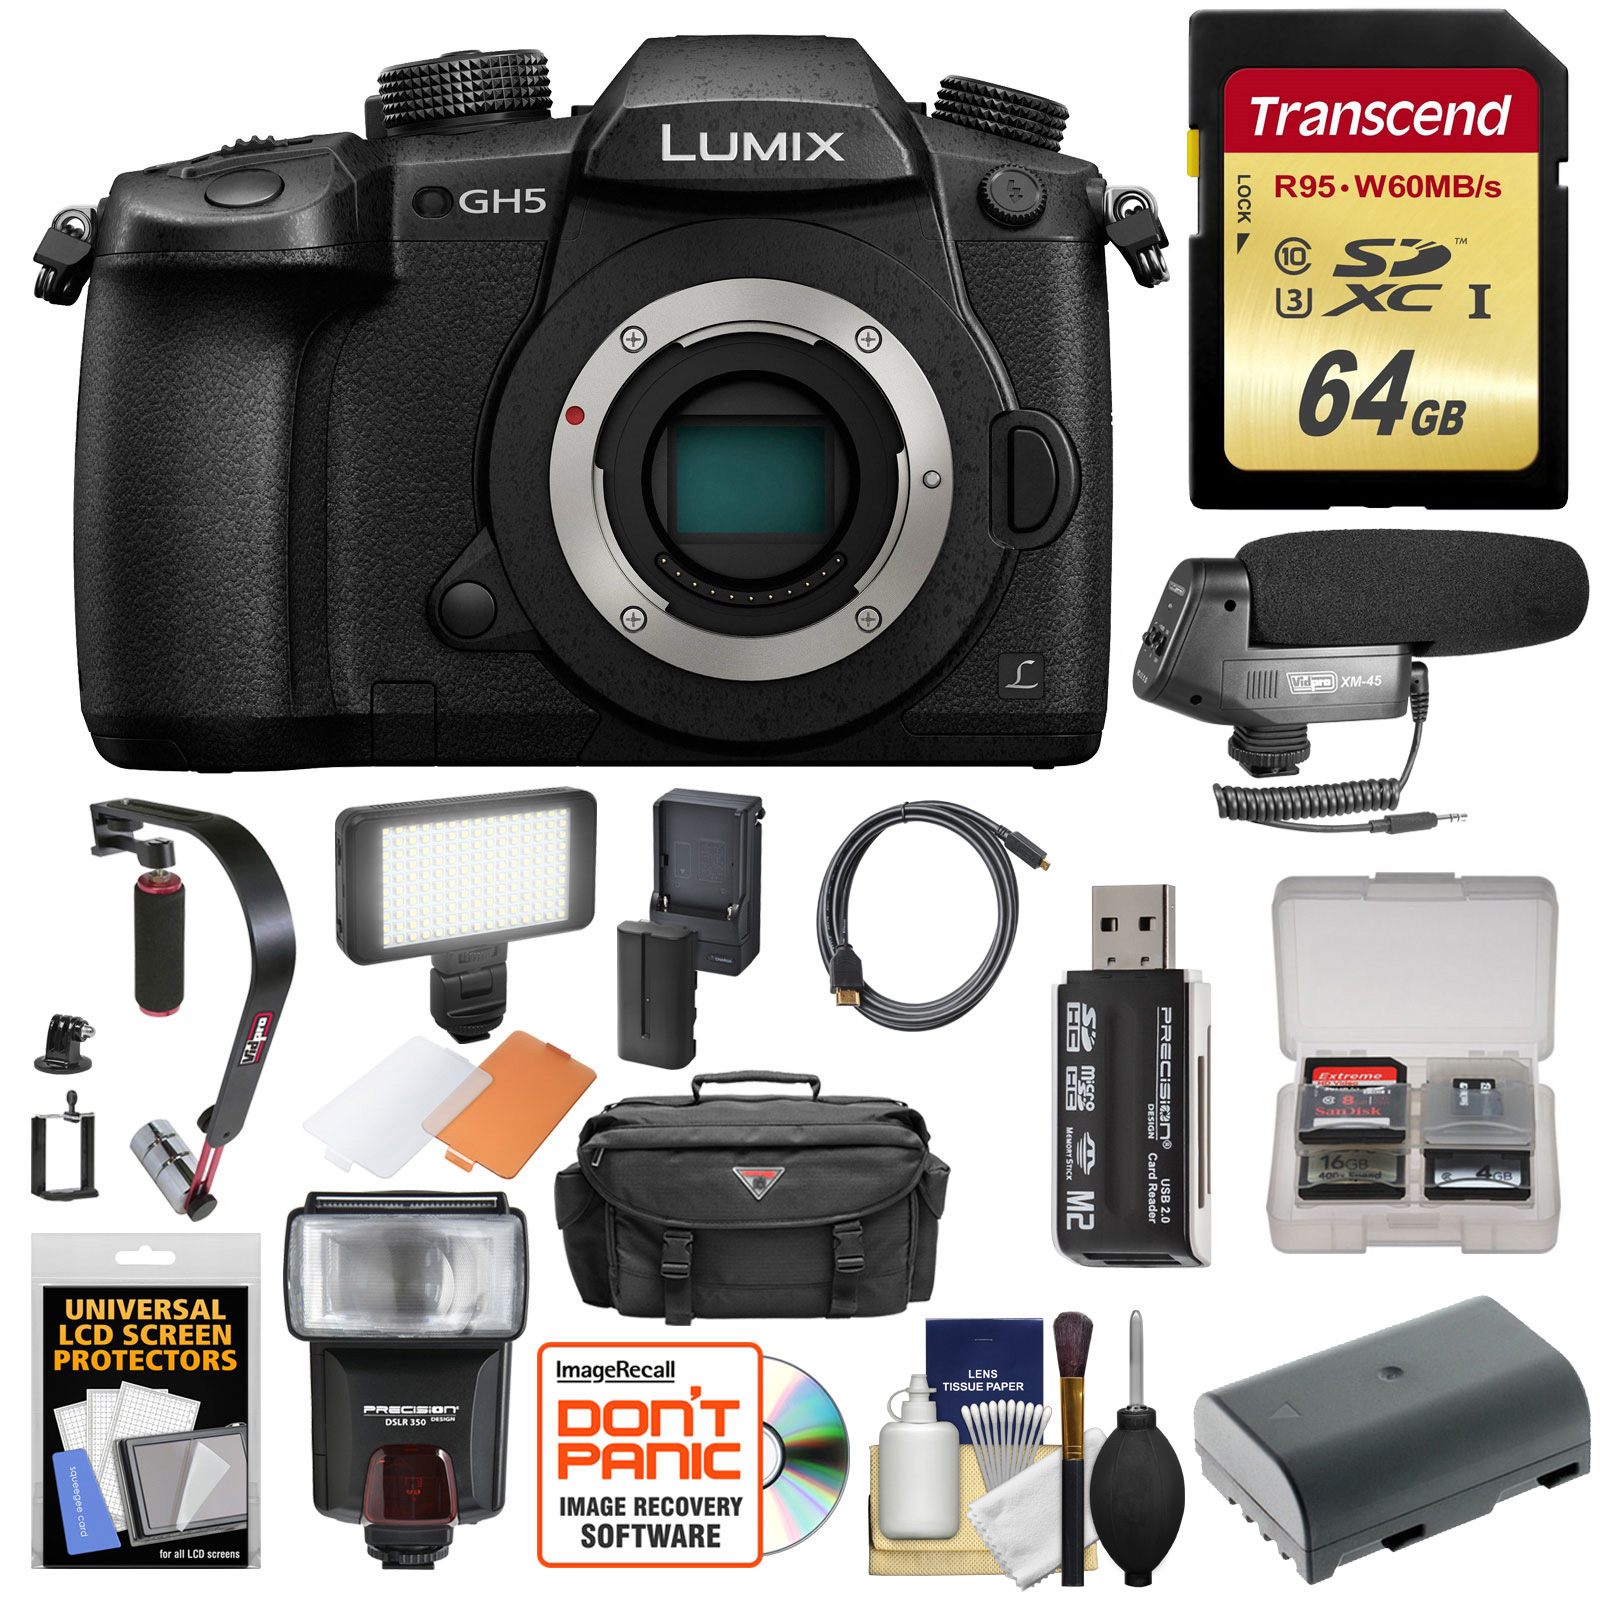 Panasonic Lumix DC-GH5 Wi-Fi 4K Digital Camera Body with 64GB Card + Case + Flash + Battery + Mic + Video... by Panasonic